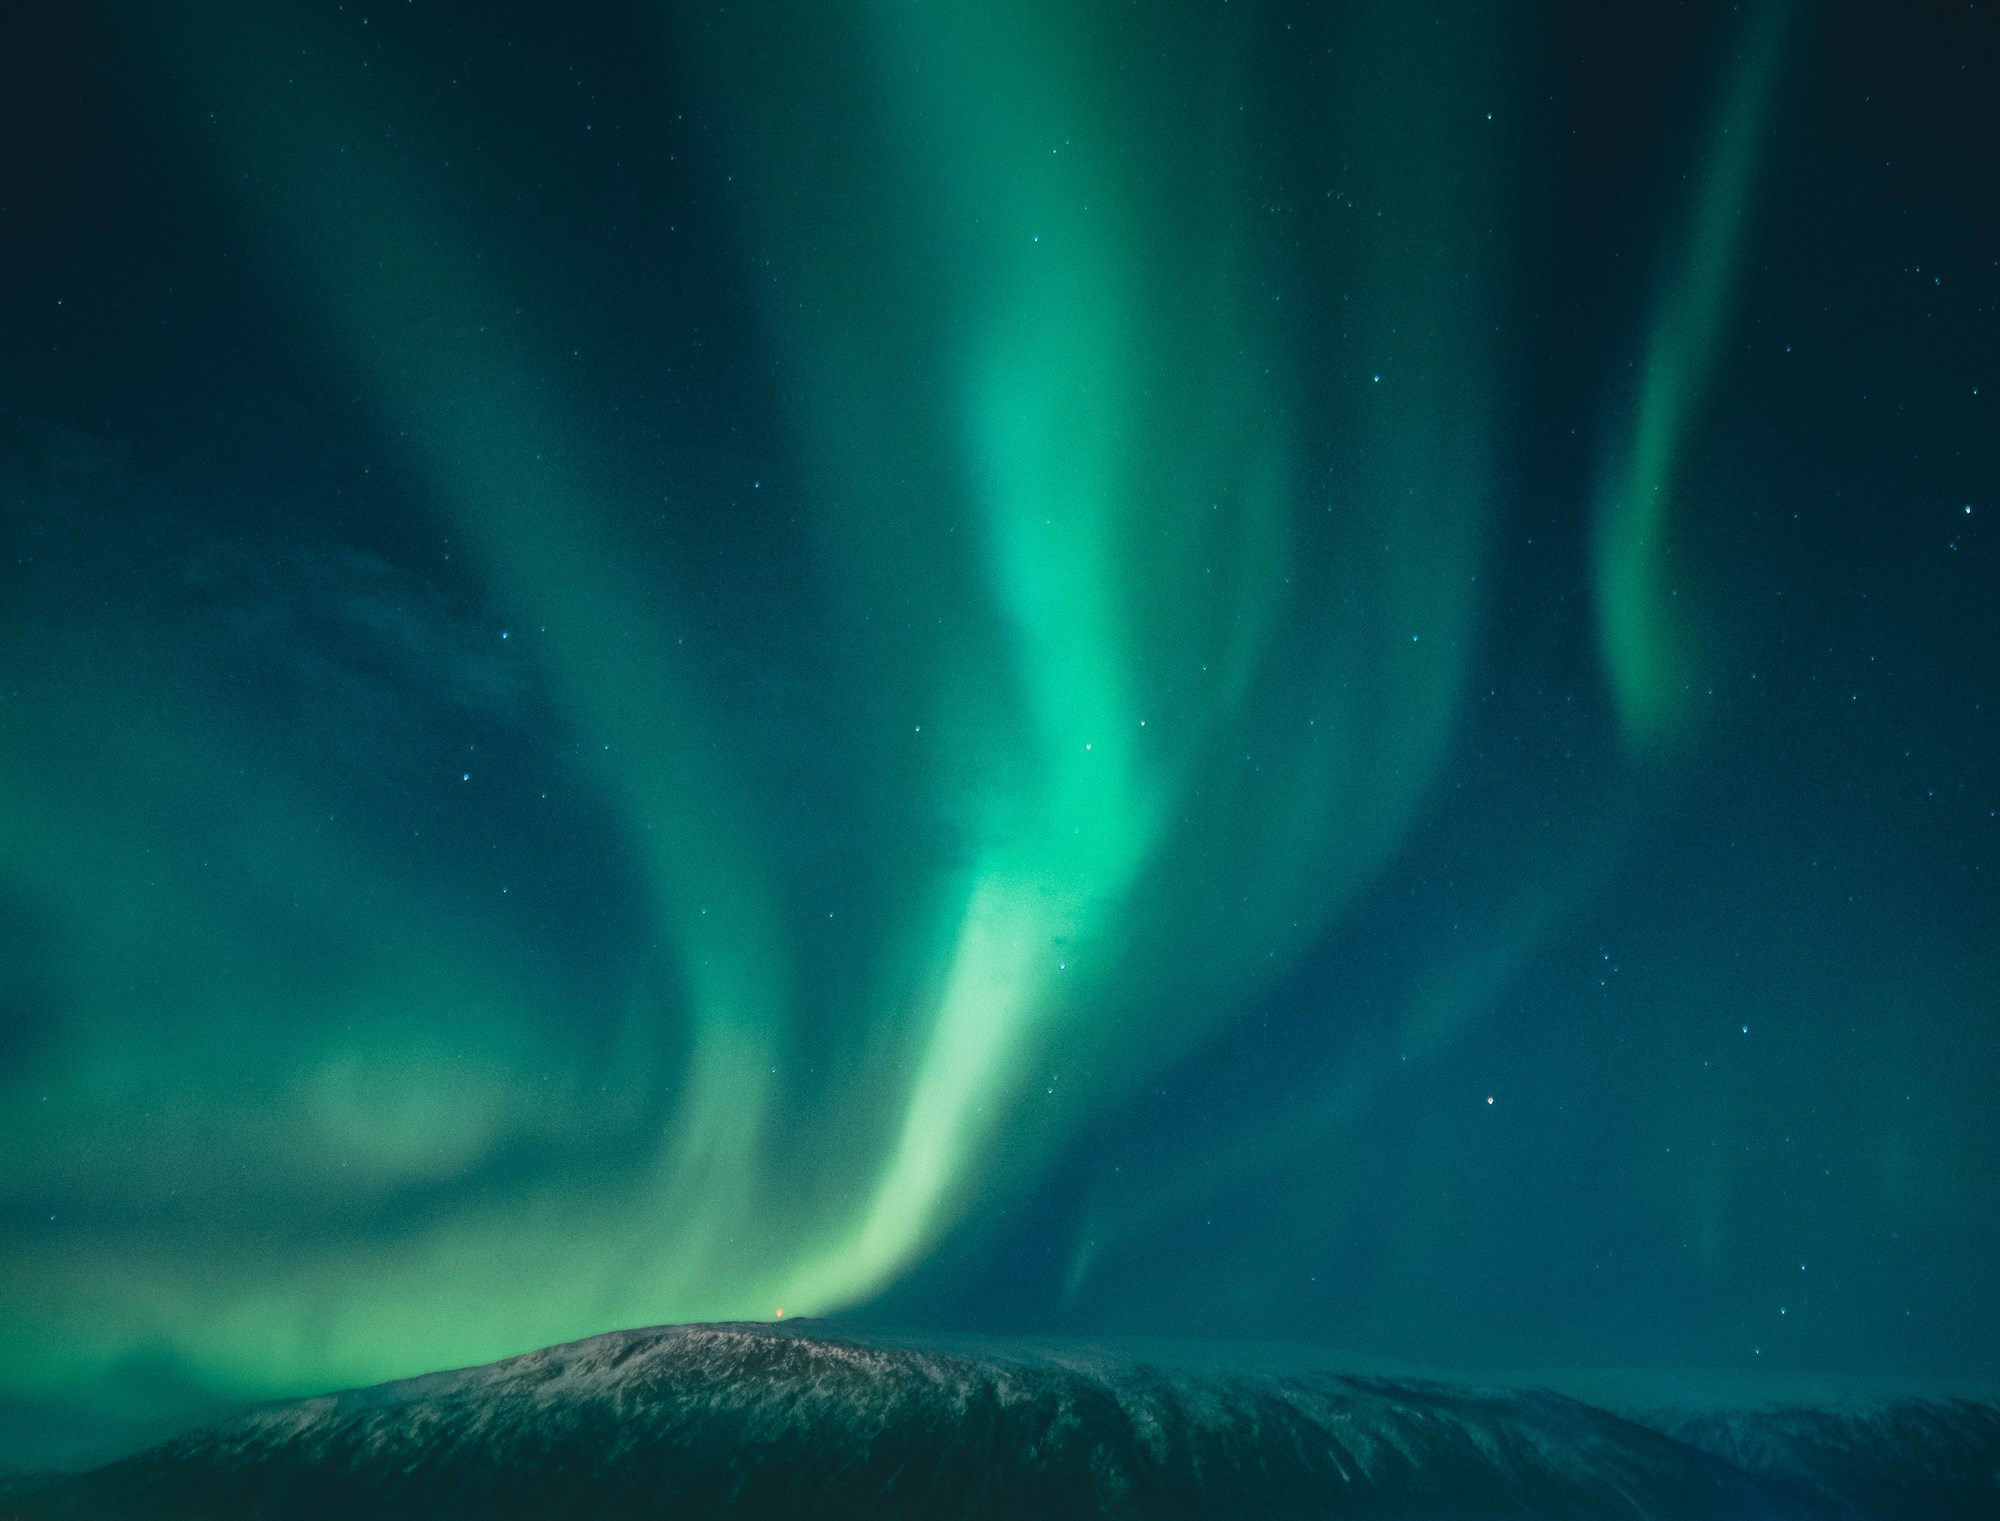 The Best Photos of the Northern Lights